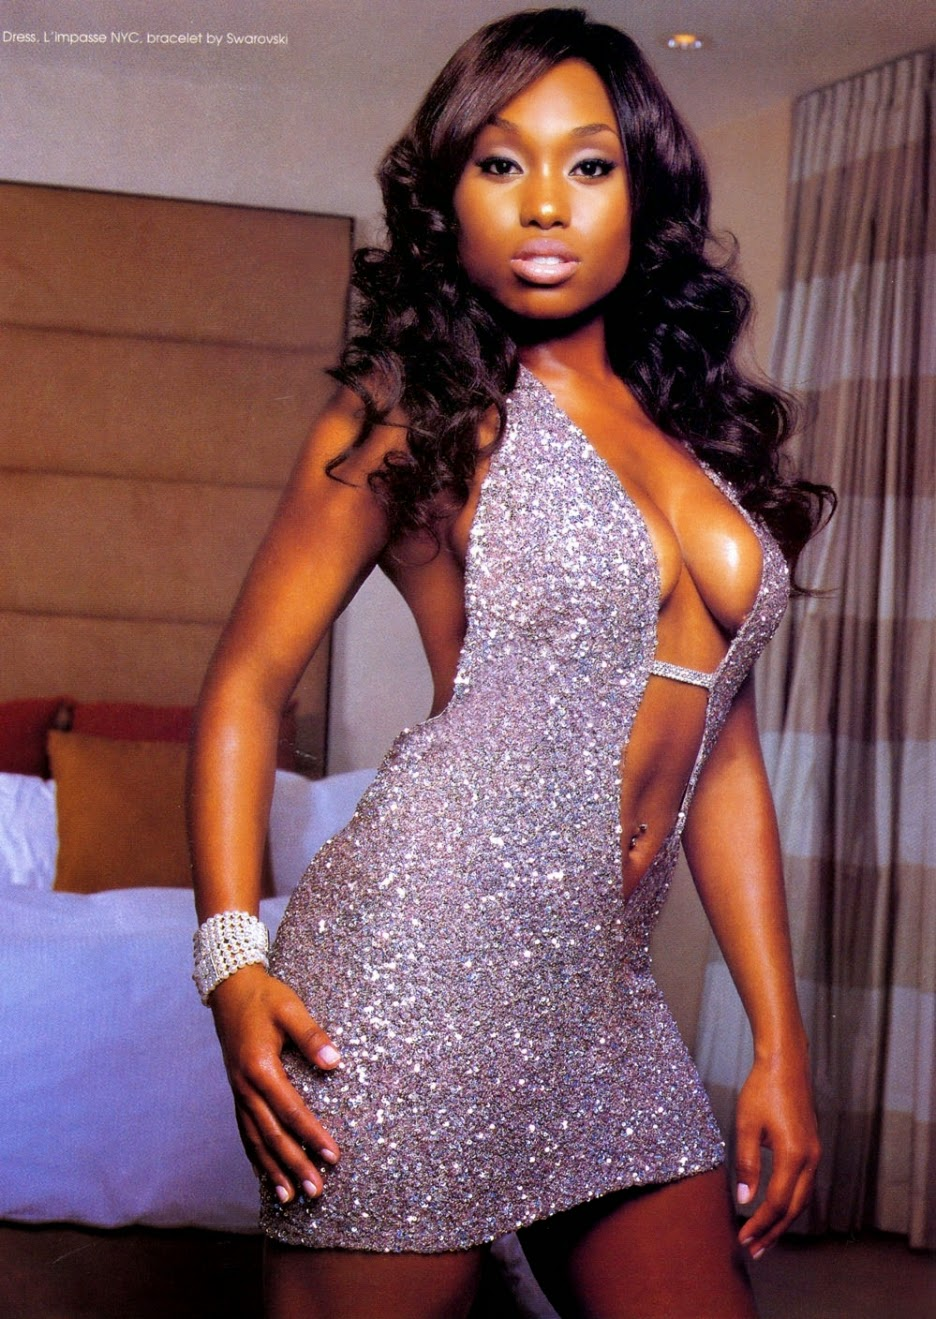 Wrap-Up Magazine: Angell Conwell Top 5 Hottest Photos